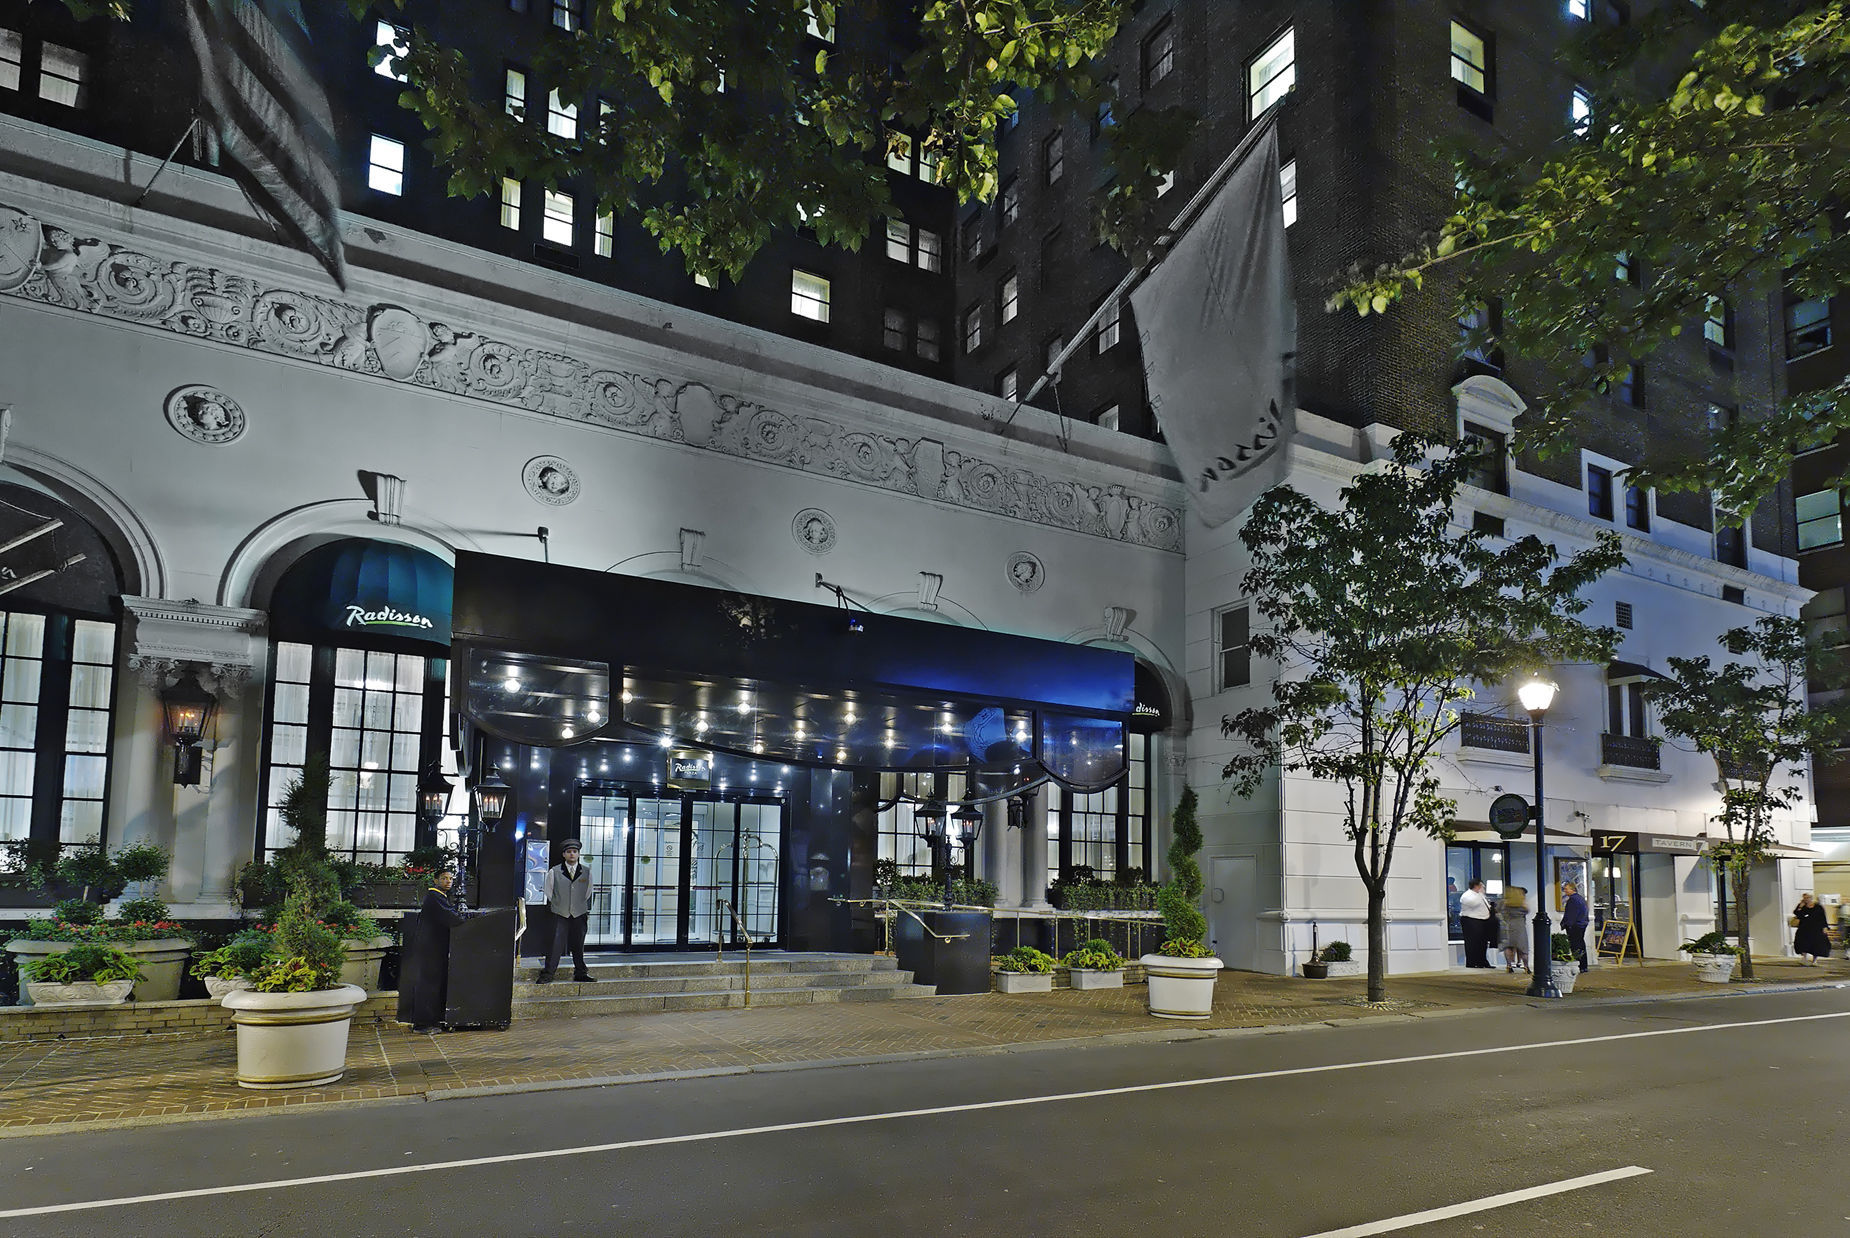 Warwick Hotel Rittenhouse Square Philadelphia Pa 4 United States From Us 317 Booked